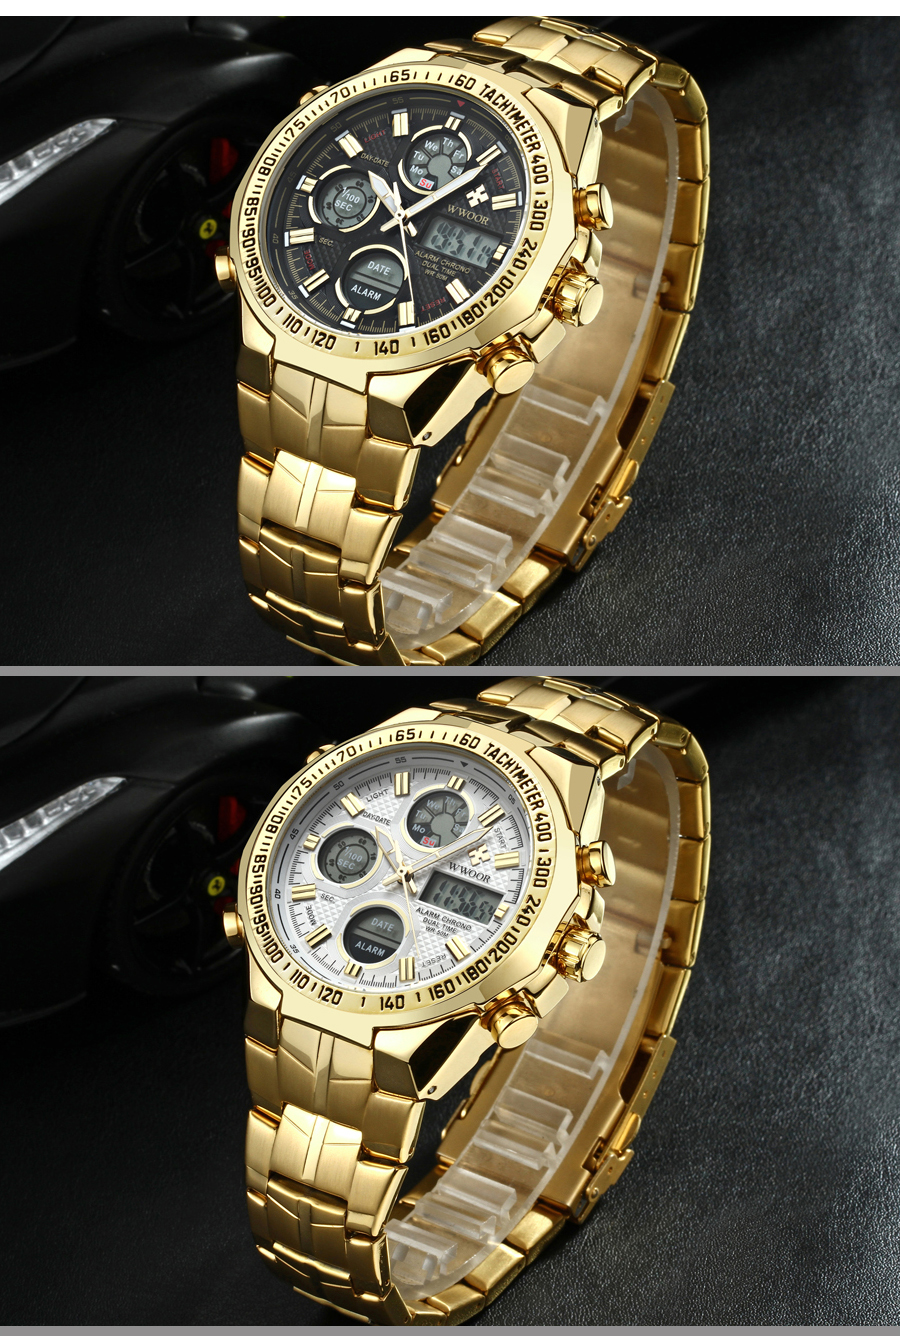 New Relogio masculino Top Luxury Gold Watch Men Big Watches Golden Stainless Steel Military Wristwatch Big Dial Clock Male (12)